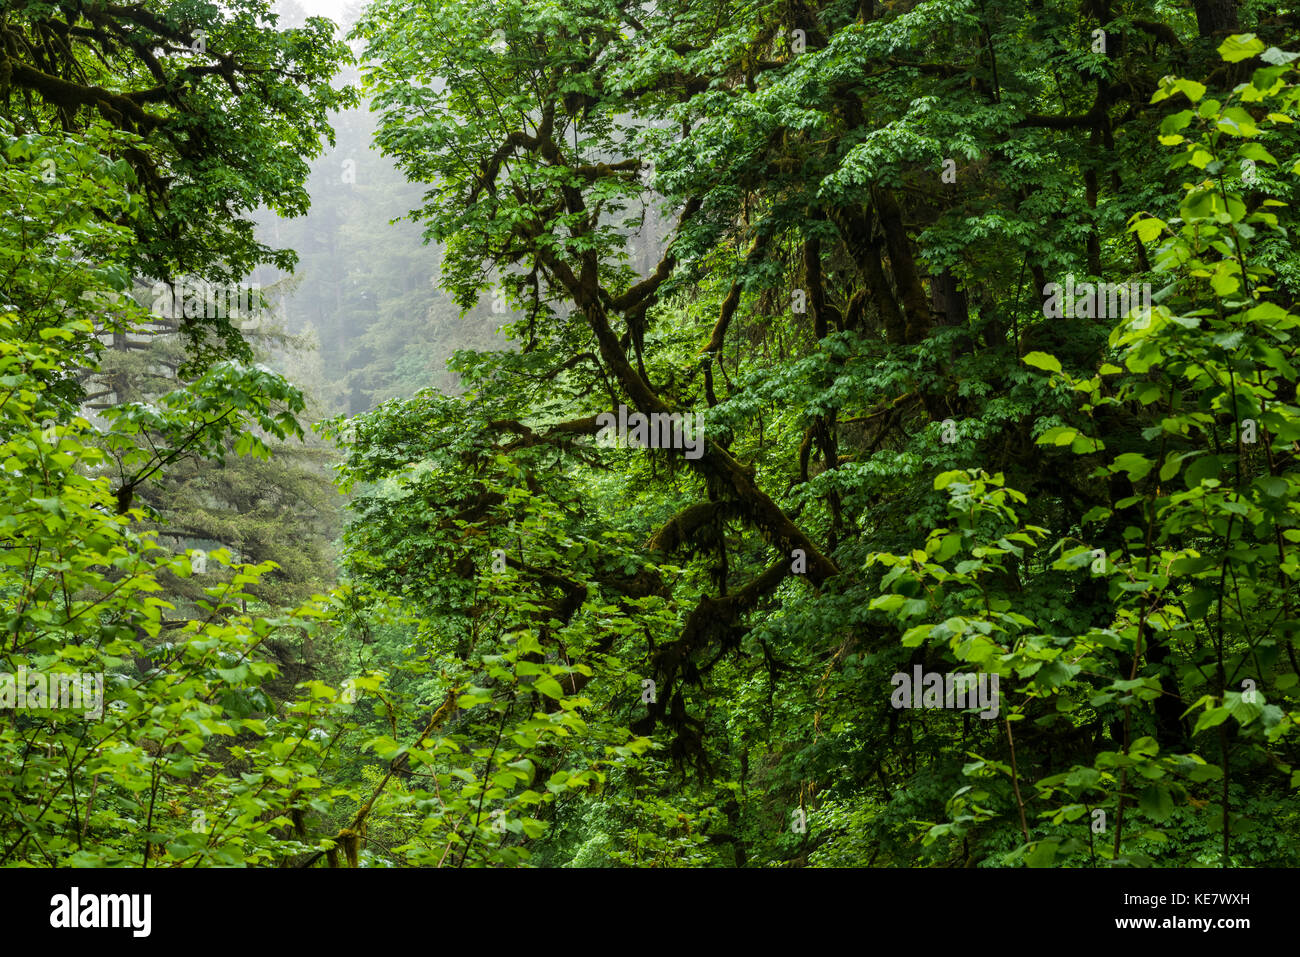 Riparian Forest Is Found Along Silver Creek, Silver Falls State Park; Oregon, United States Of America - Stock Image